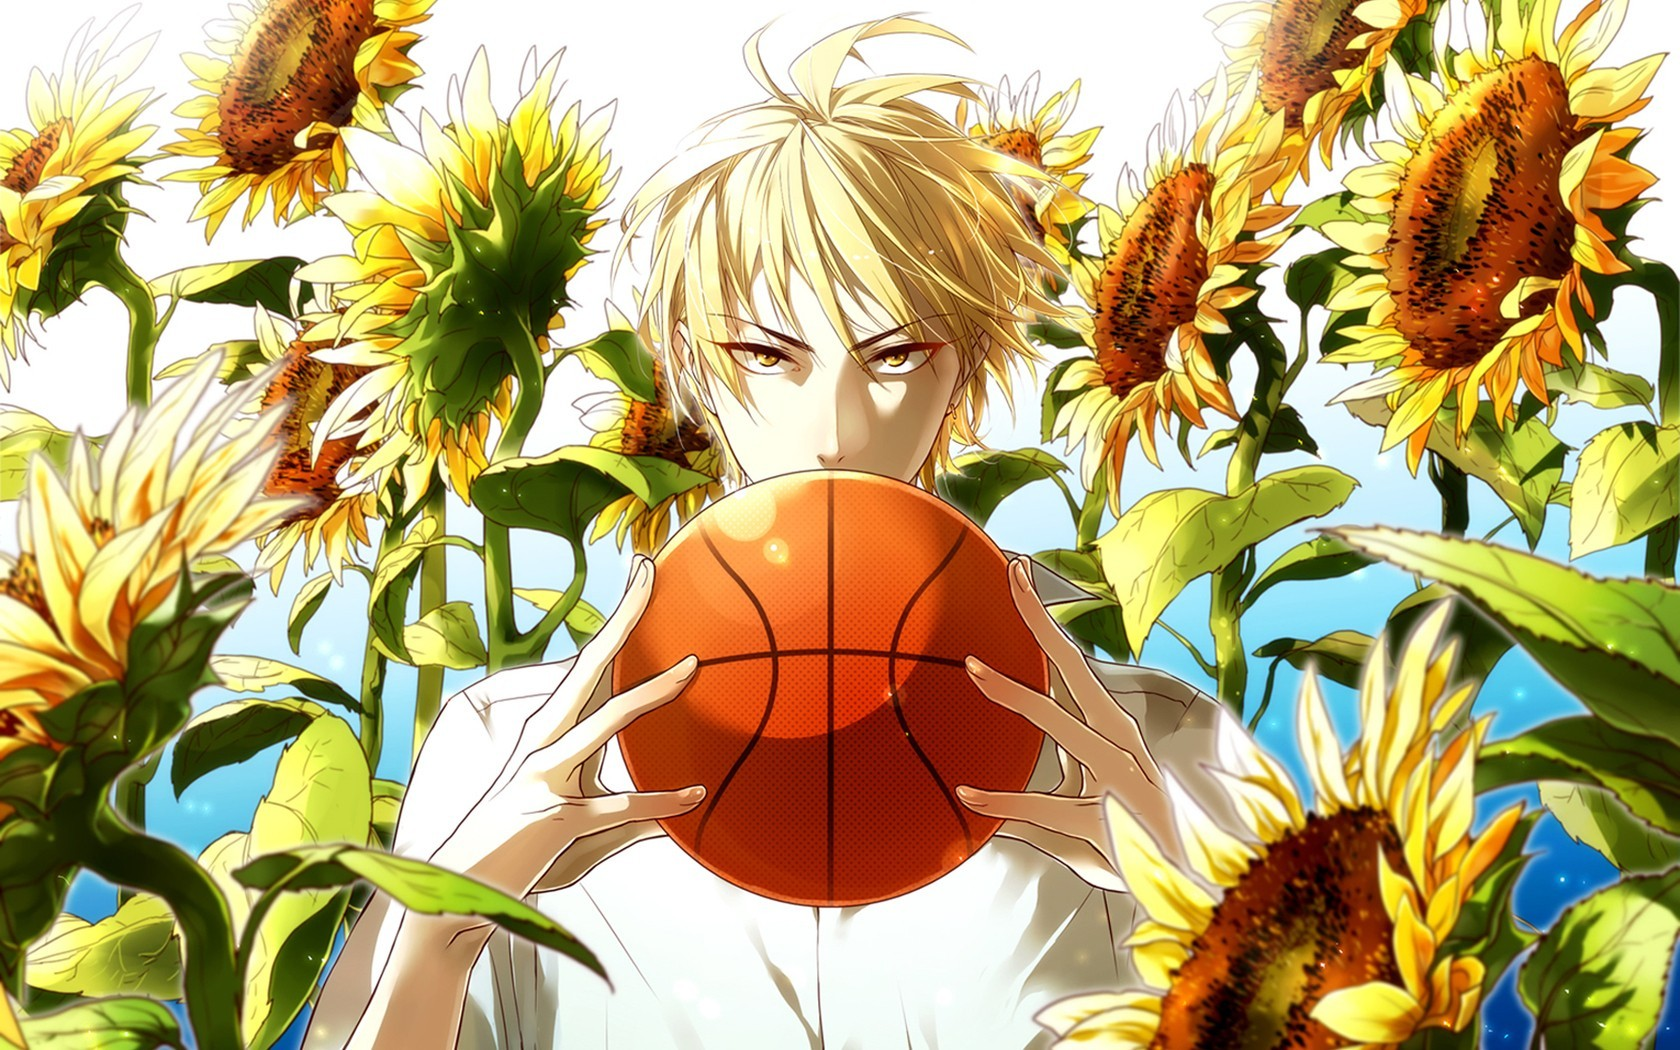 Boys sunflowers kuroko no basket kise ryouta wallpaper hd voltagebd Gallery